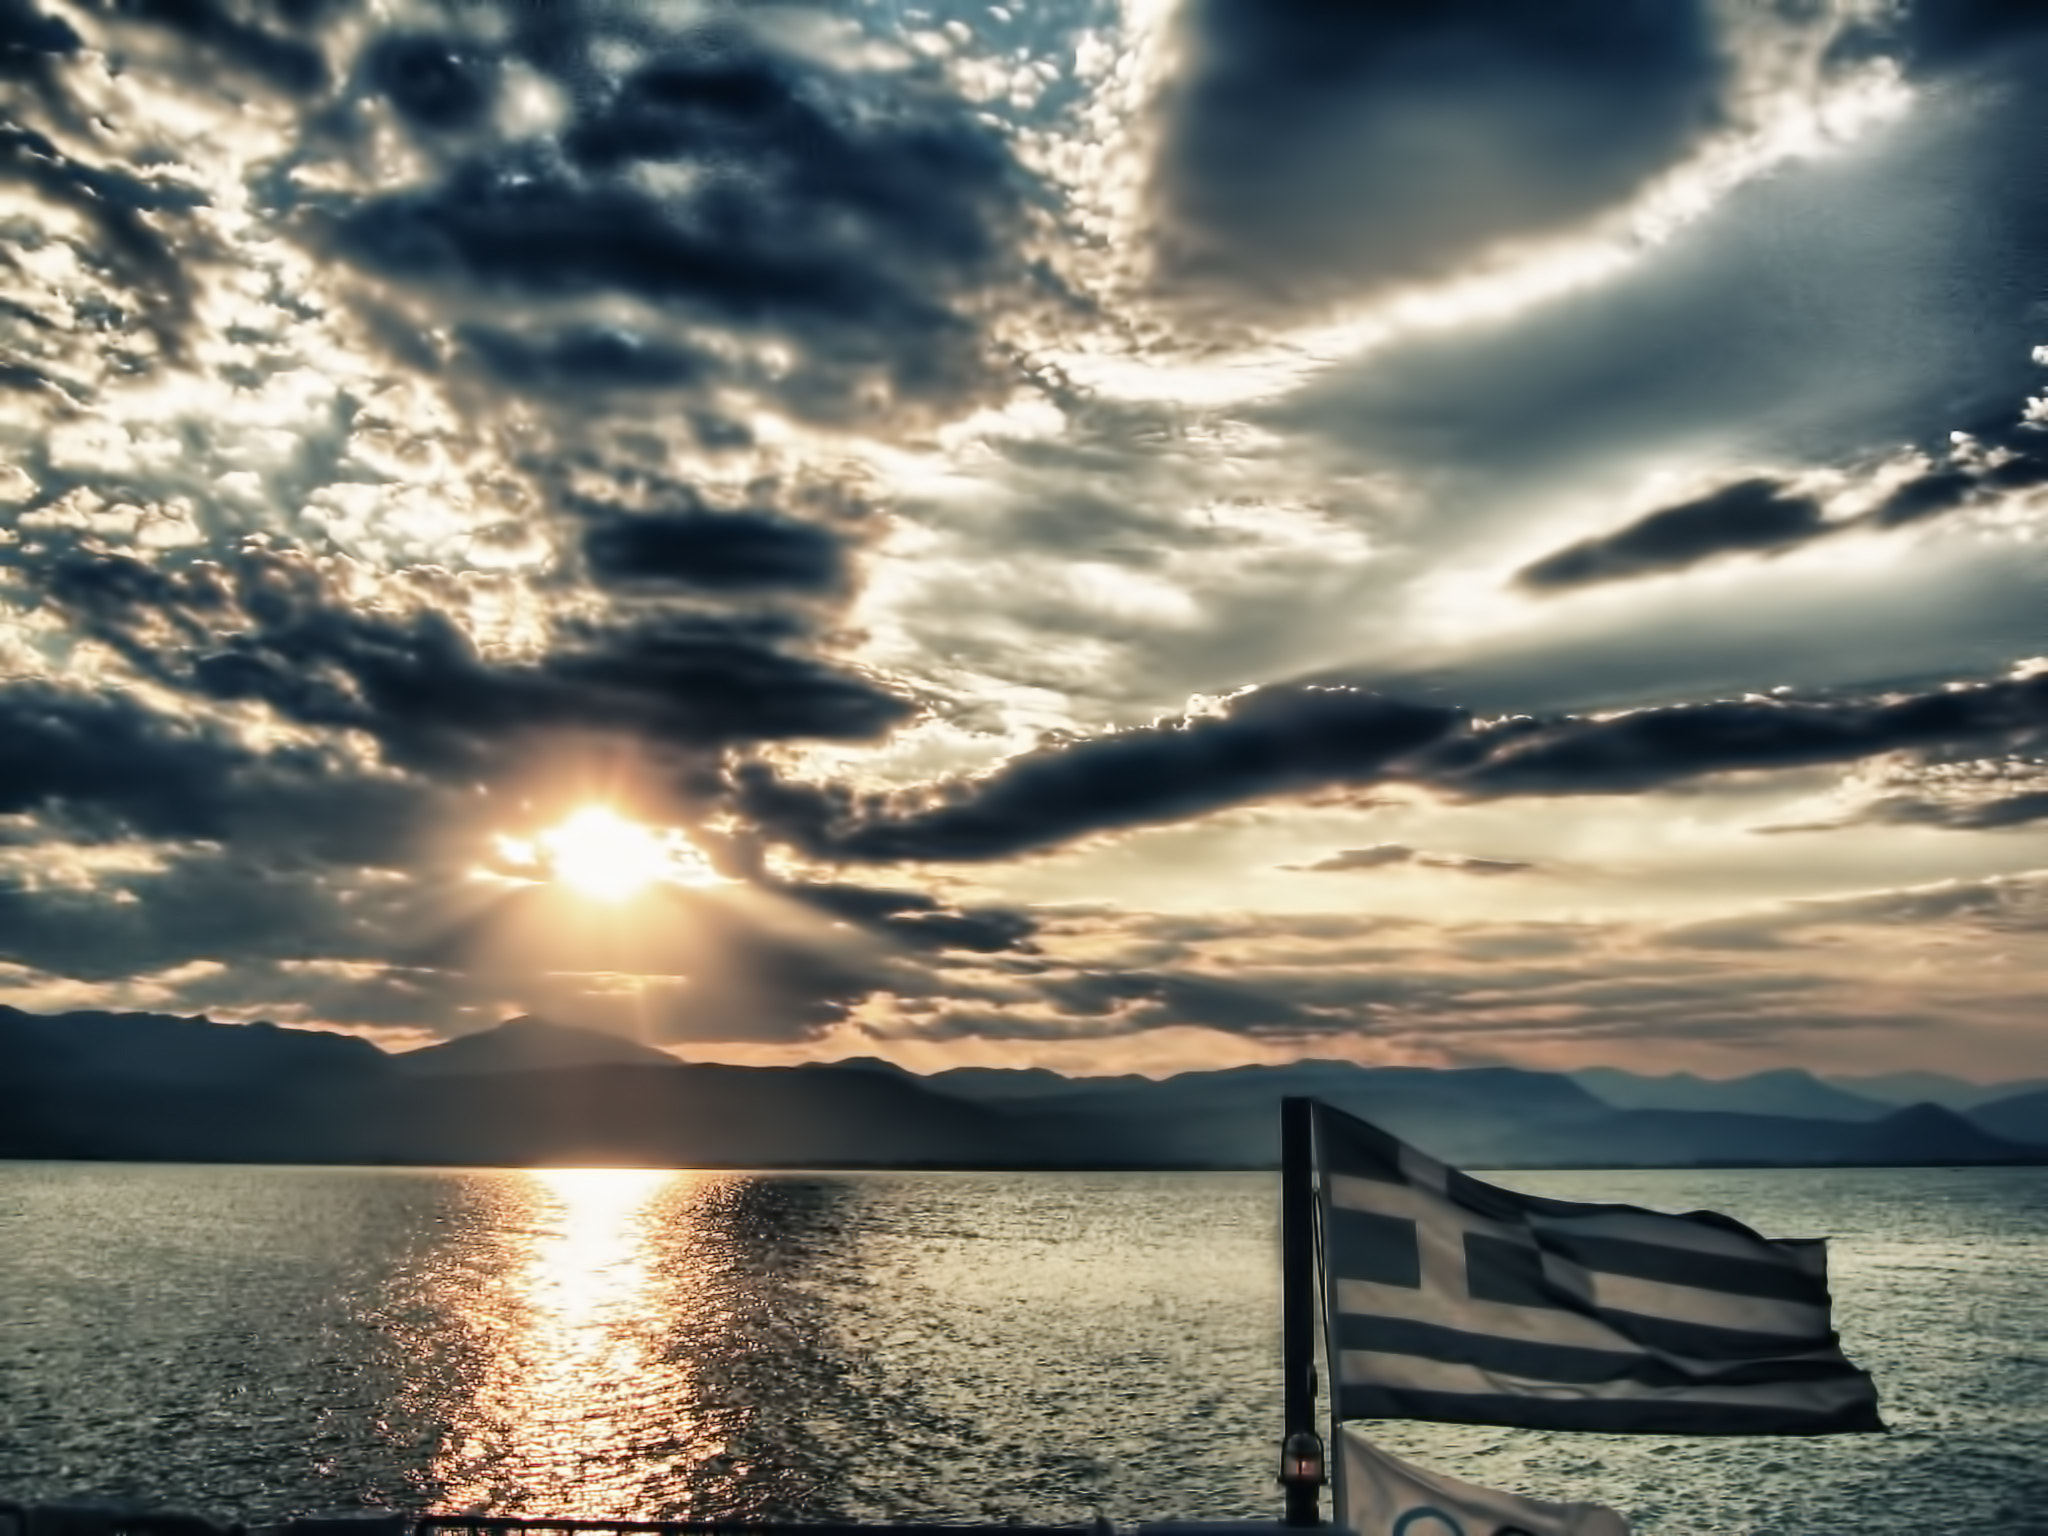 Photograph Greek sunset HDR by Peter BABILOTTE on 500px